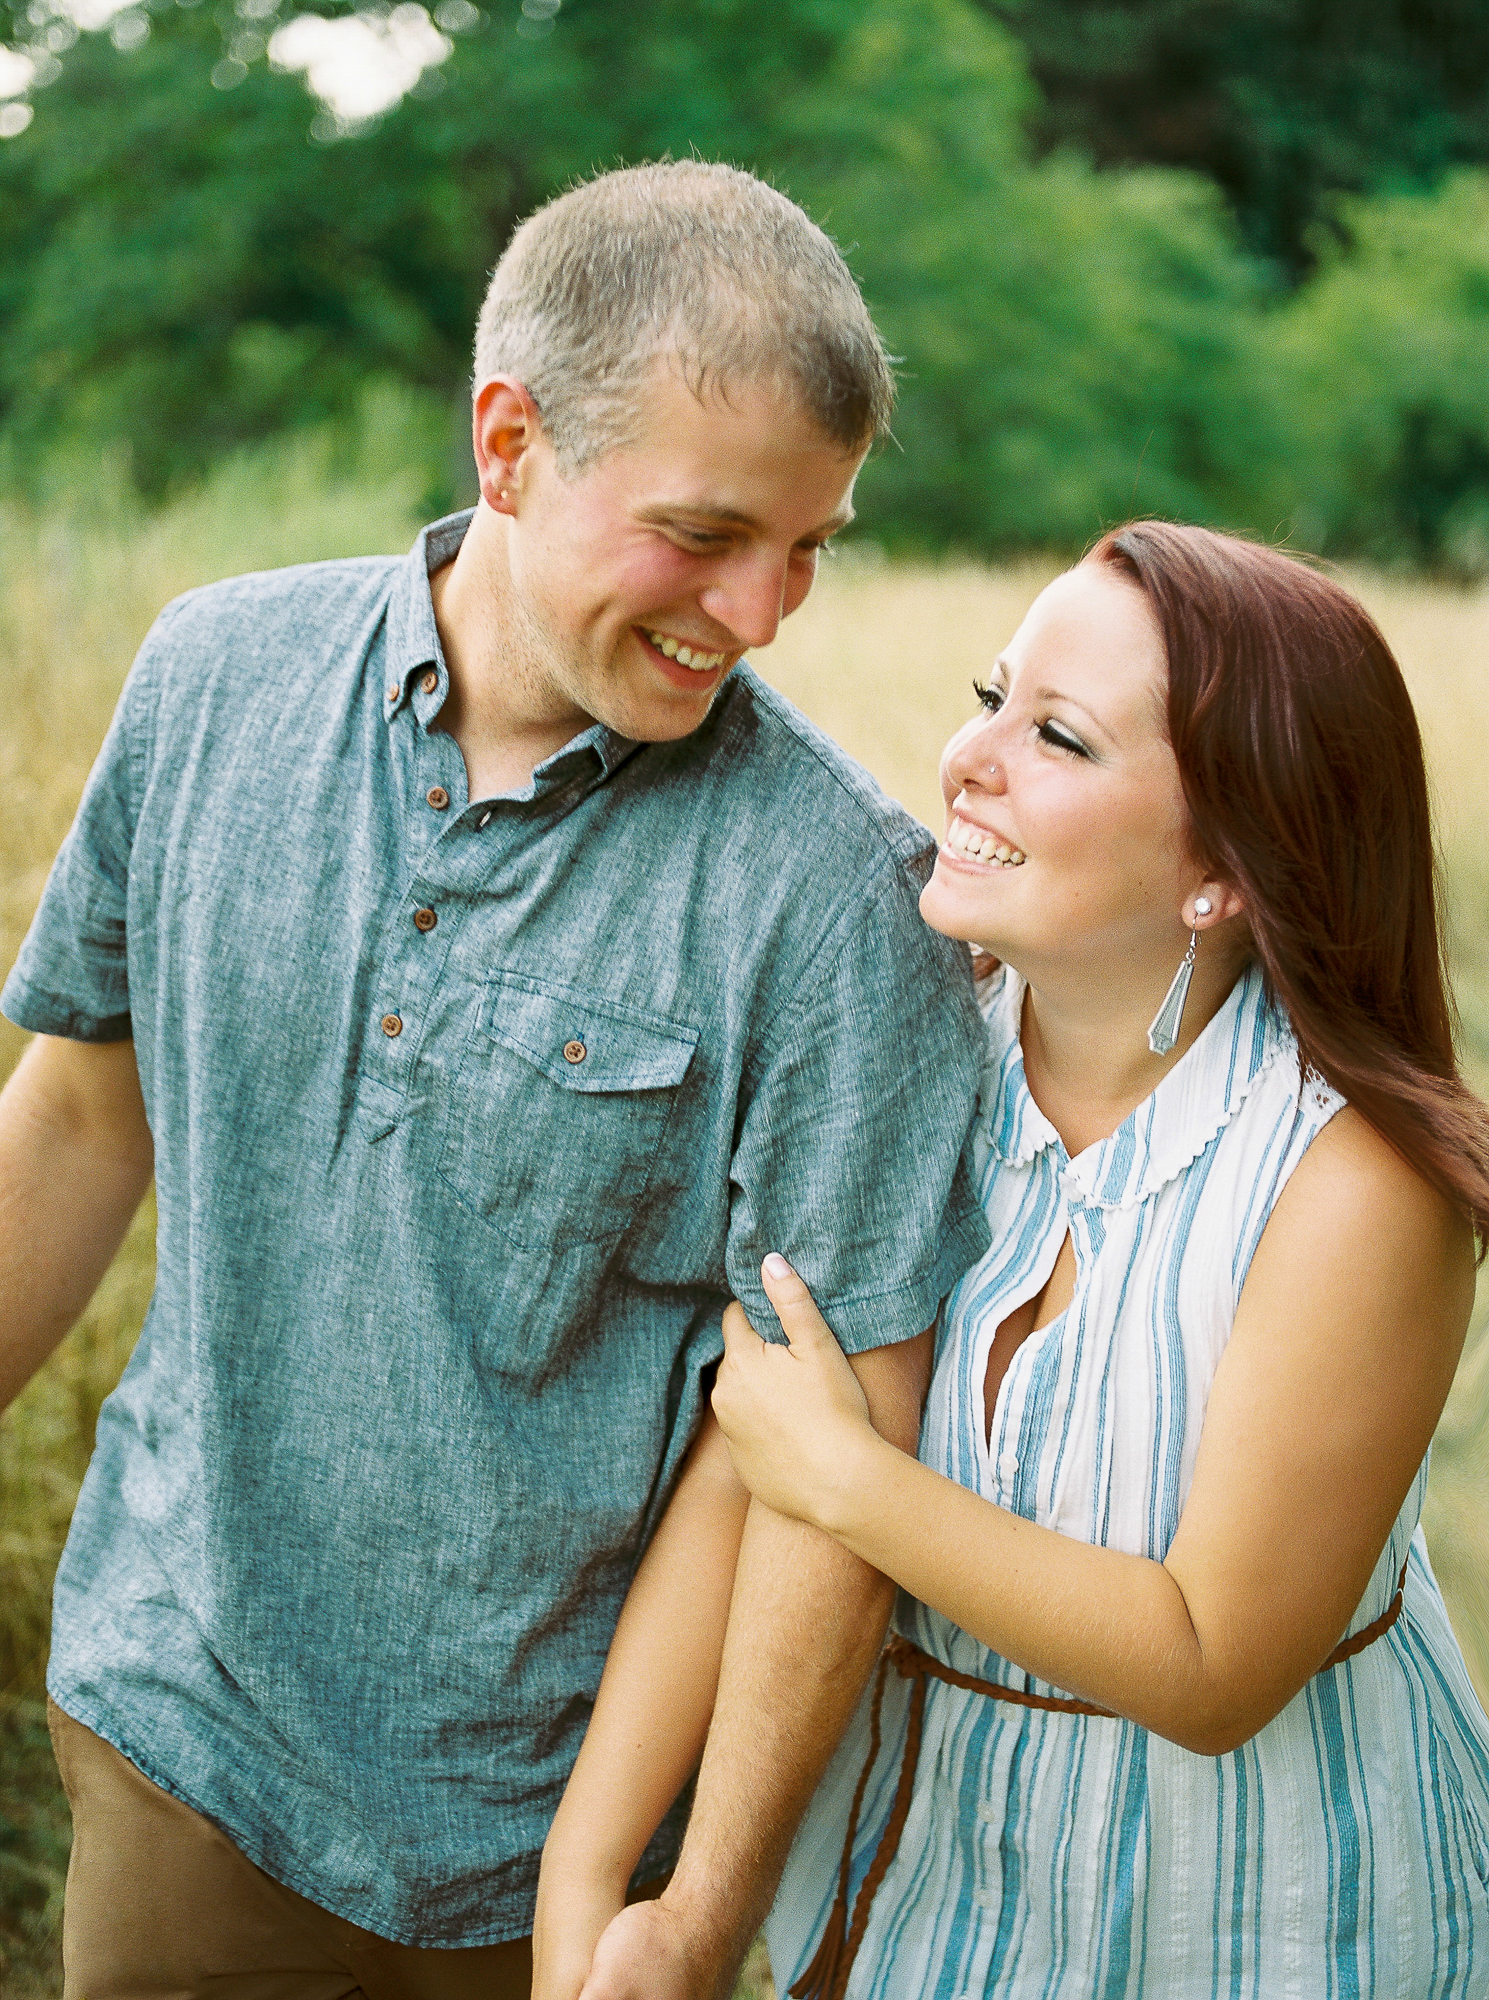 Alexandra-Elise-Photography-Ali-Reed-Film-Farm-Engagement-Session-014